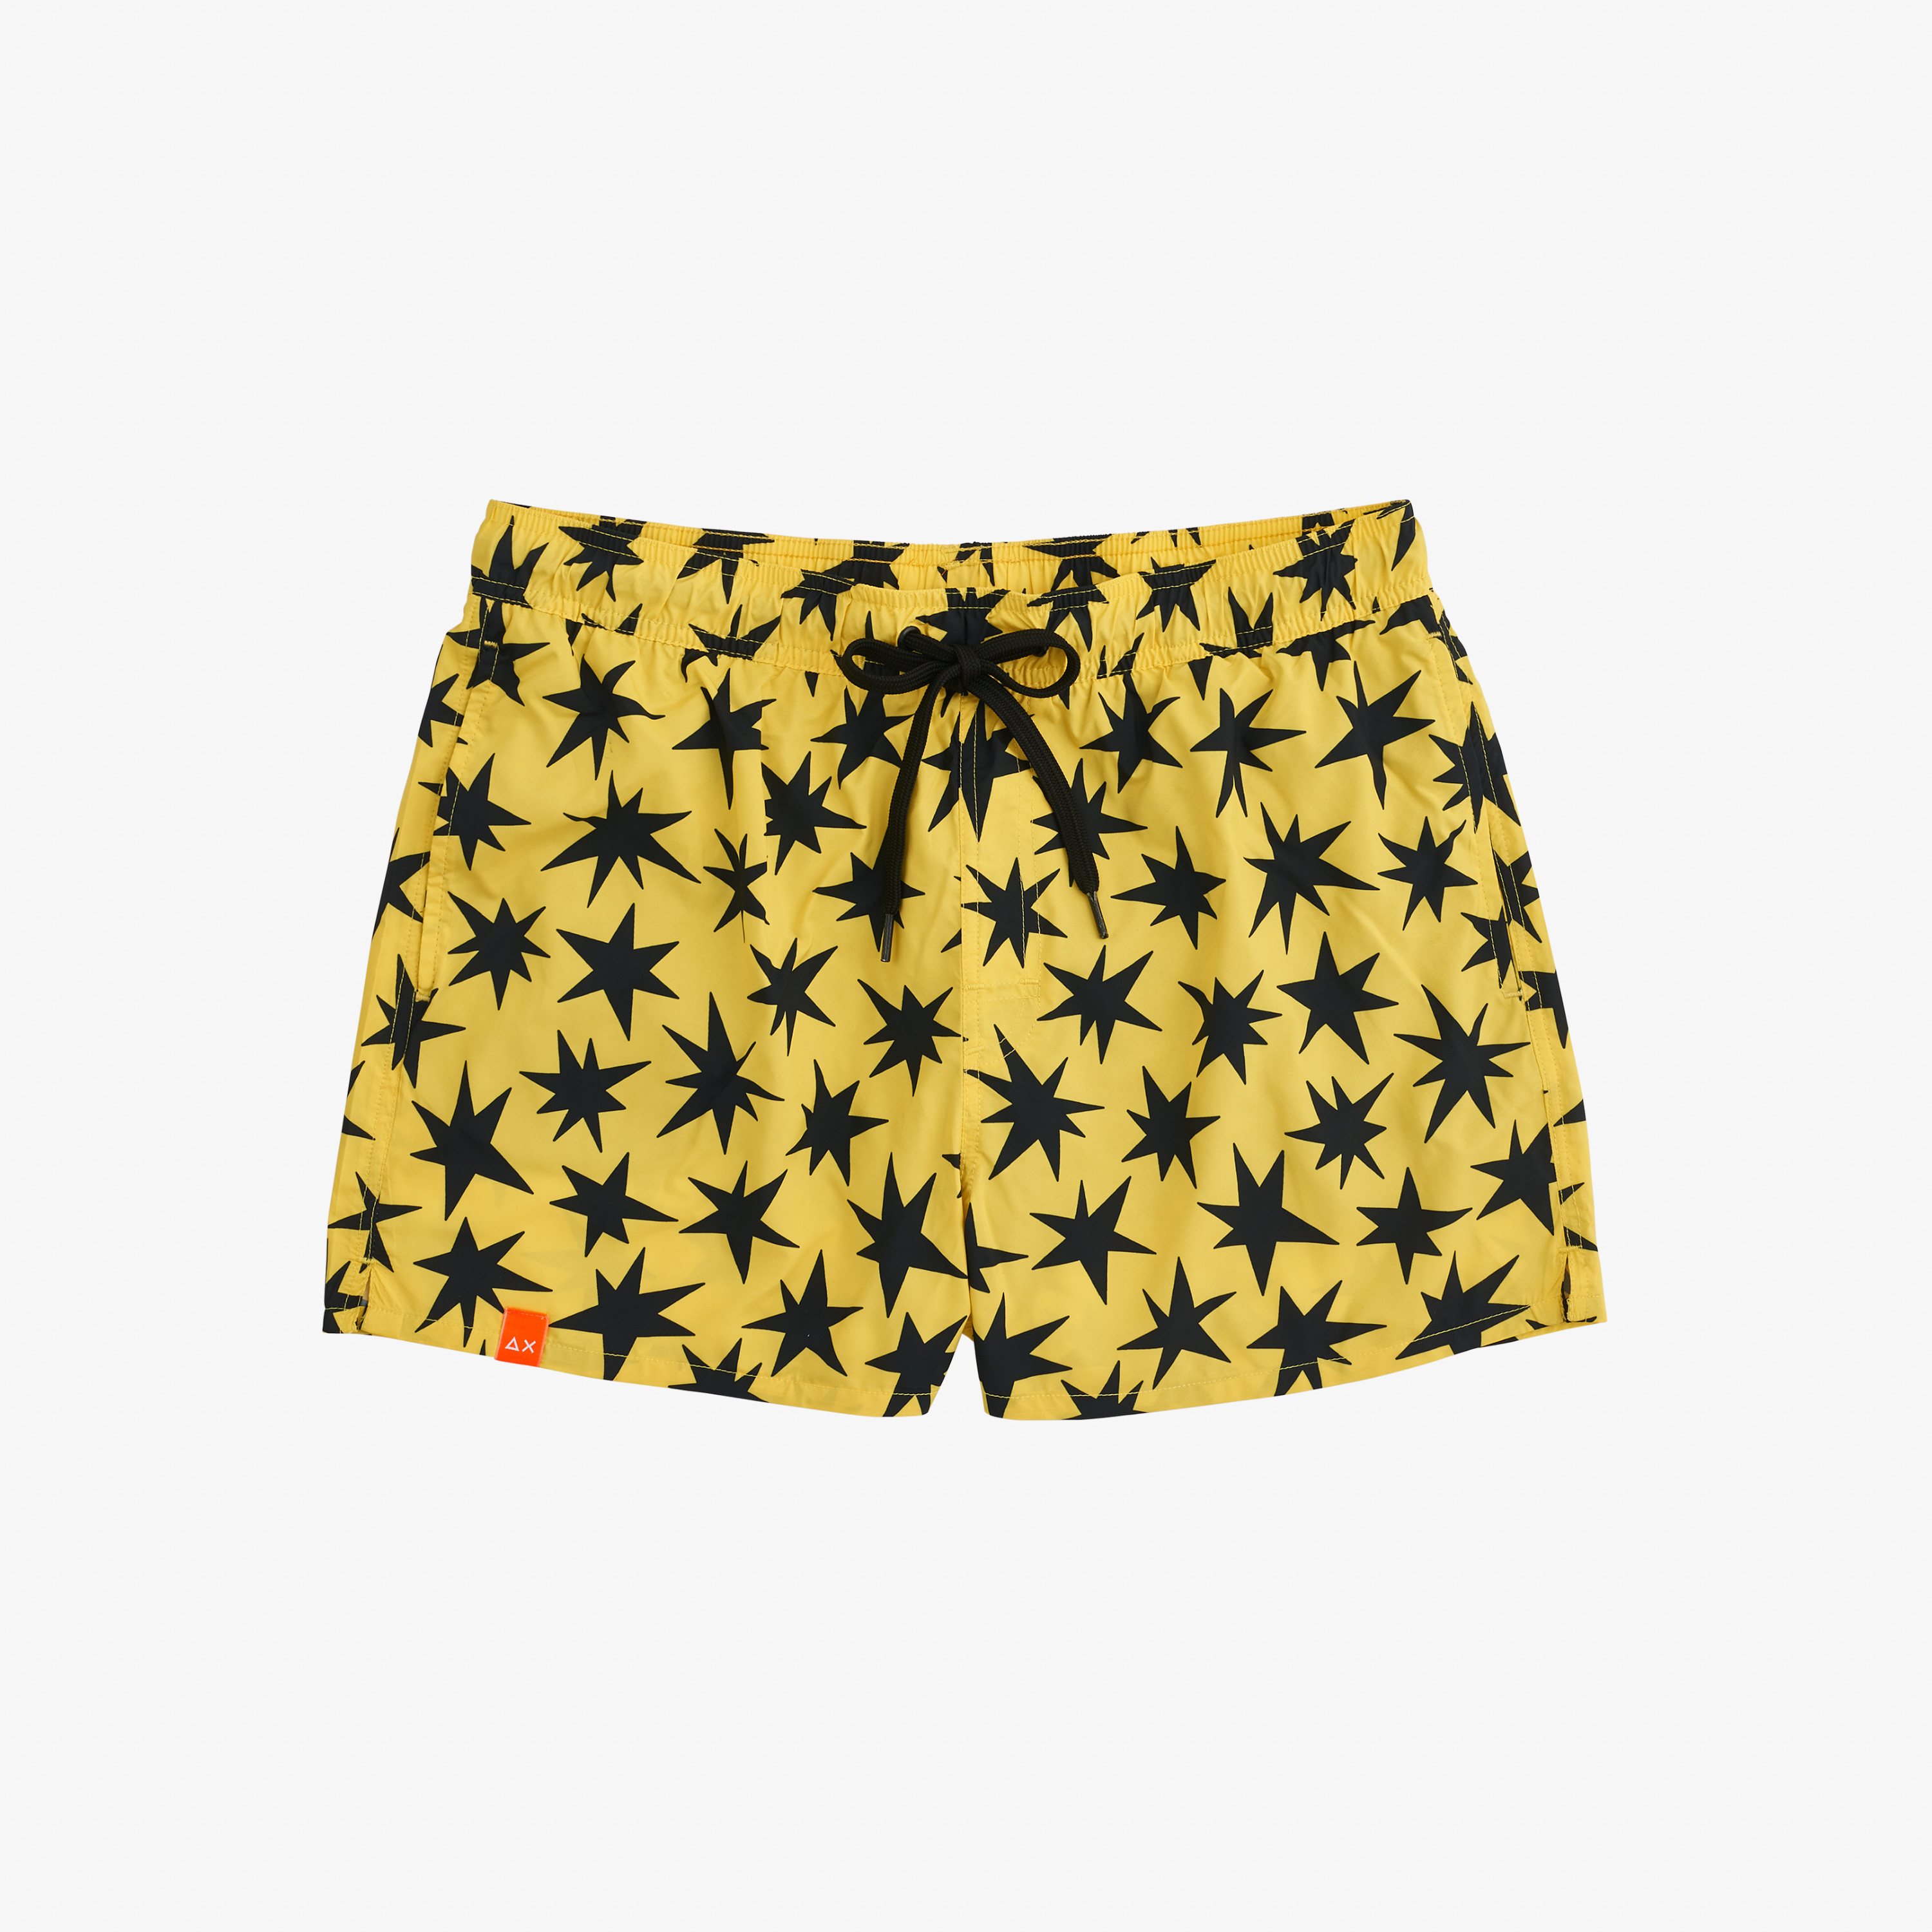 SWIM PANT ABSTRACT YELLOW/BLACK